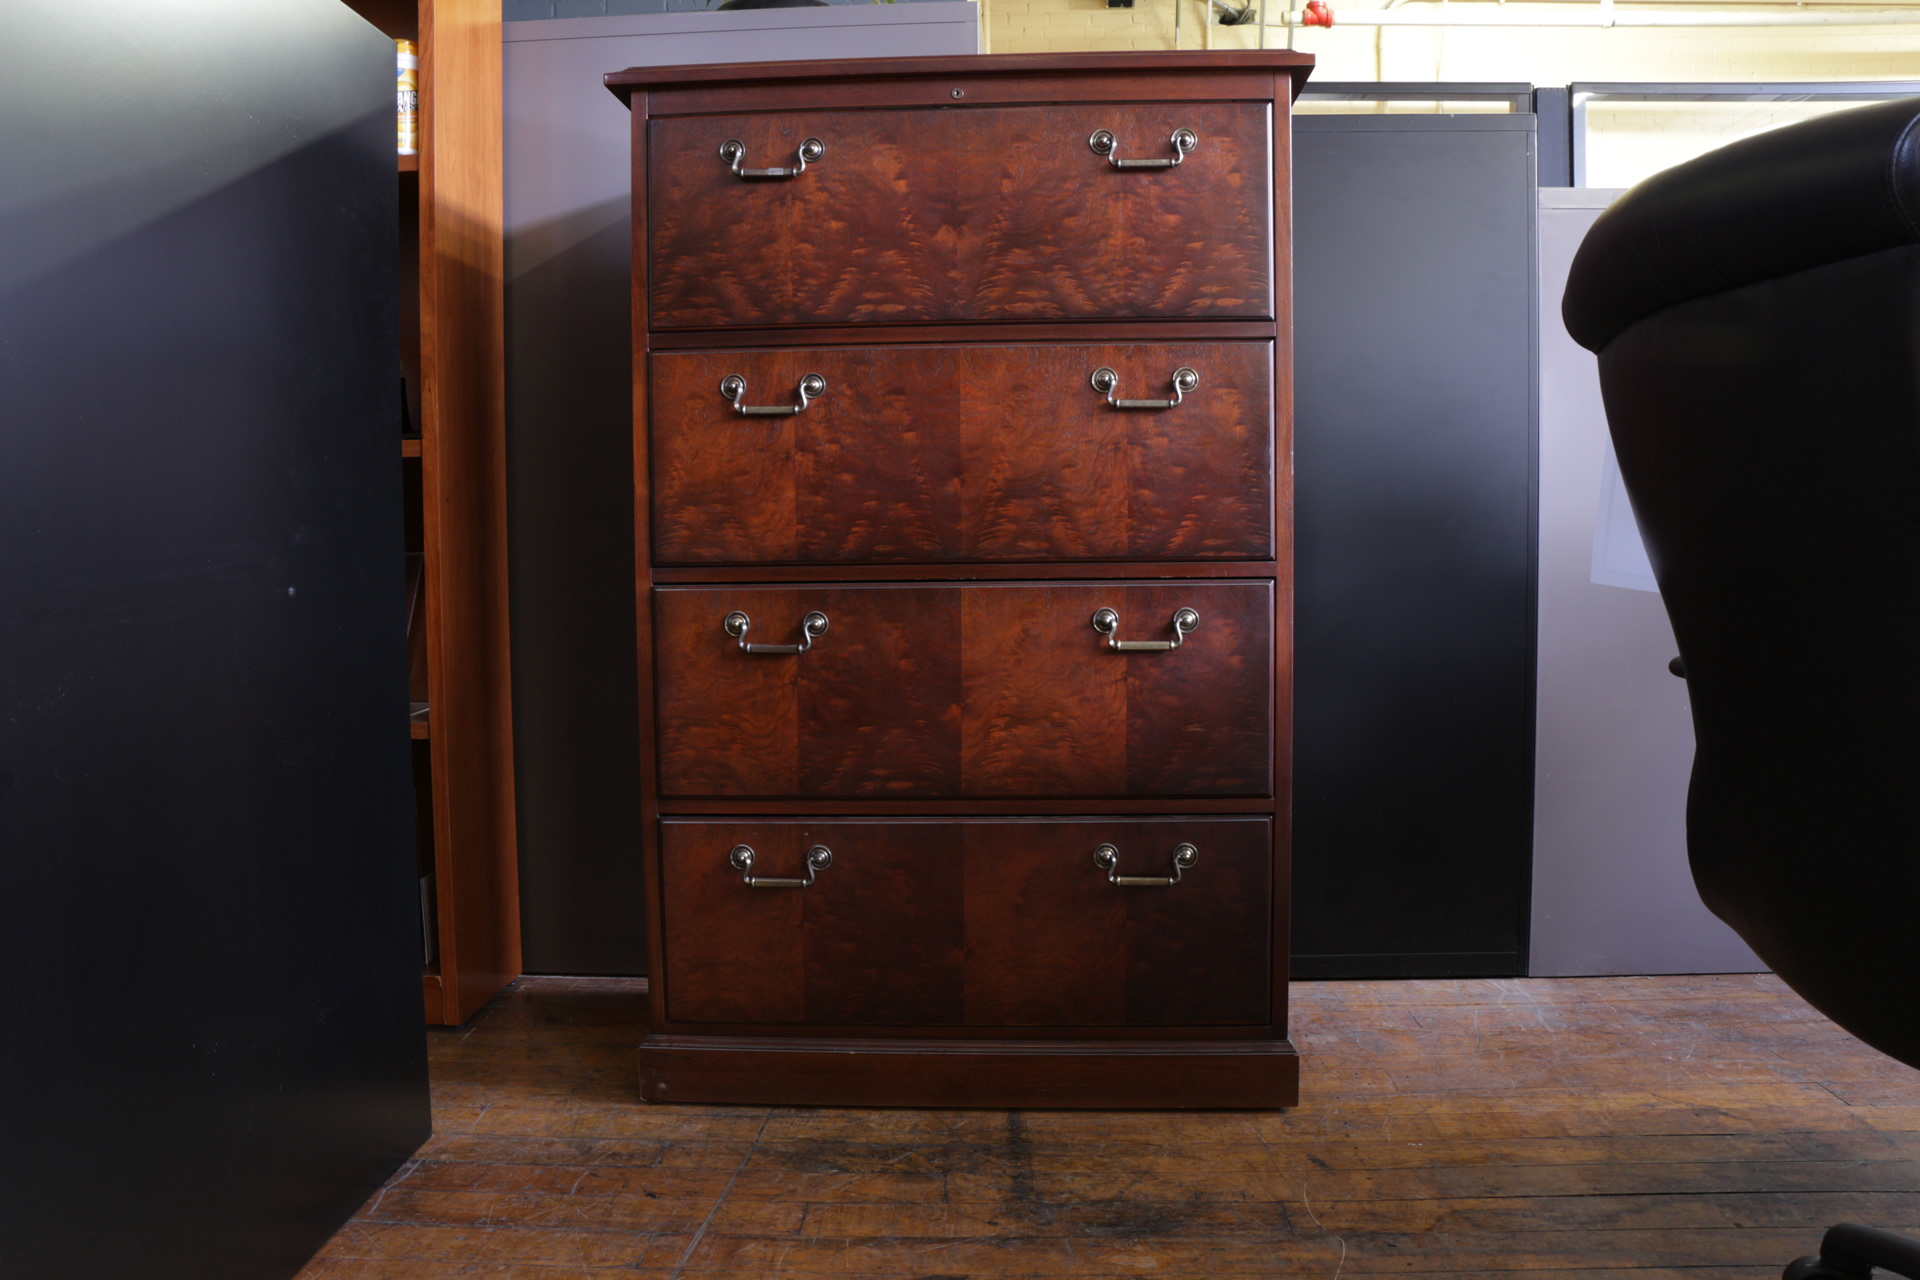 Horizontal File Cabinet Kimball Wood 4 Drawer Lateral File Cabinet Peartree Office Furniture